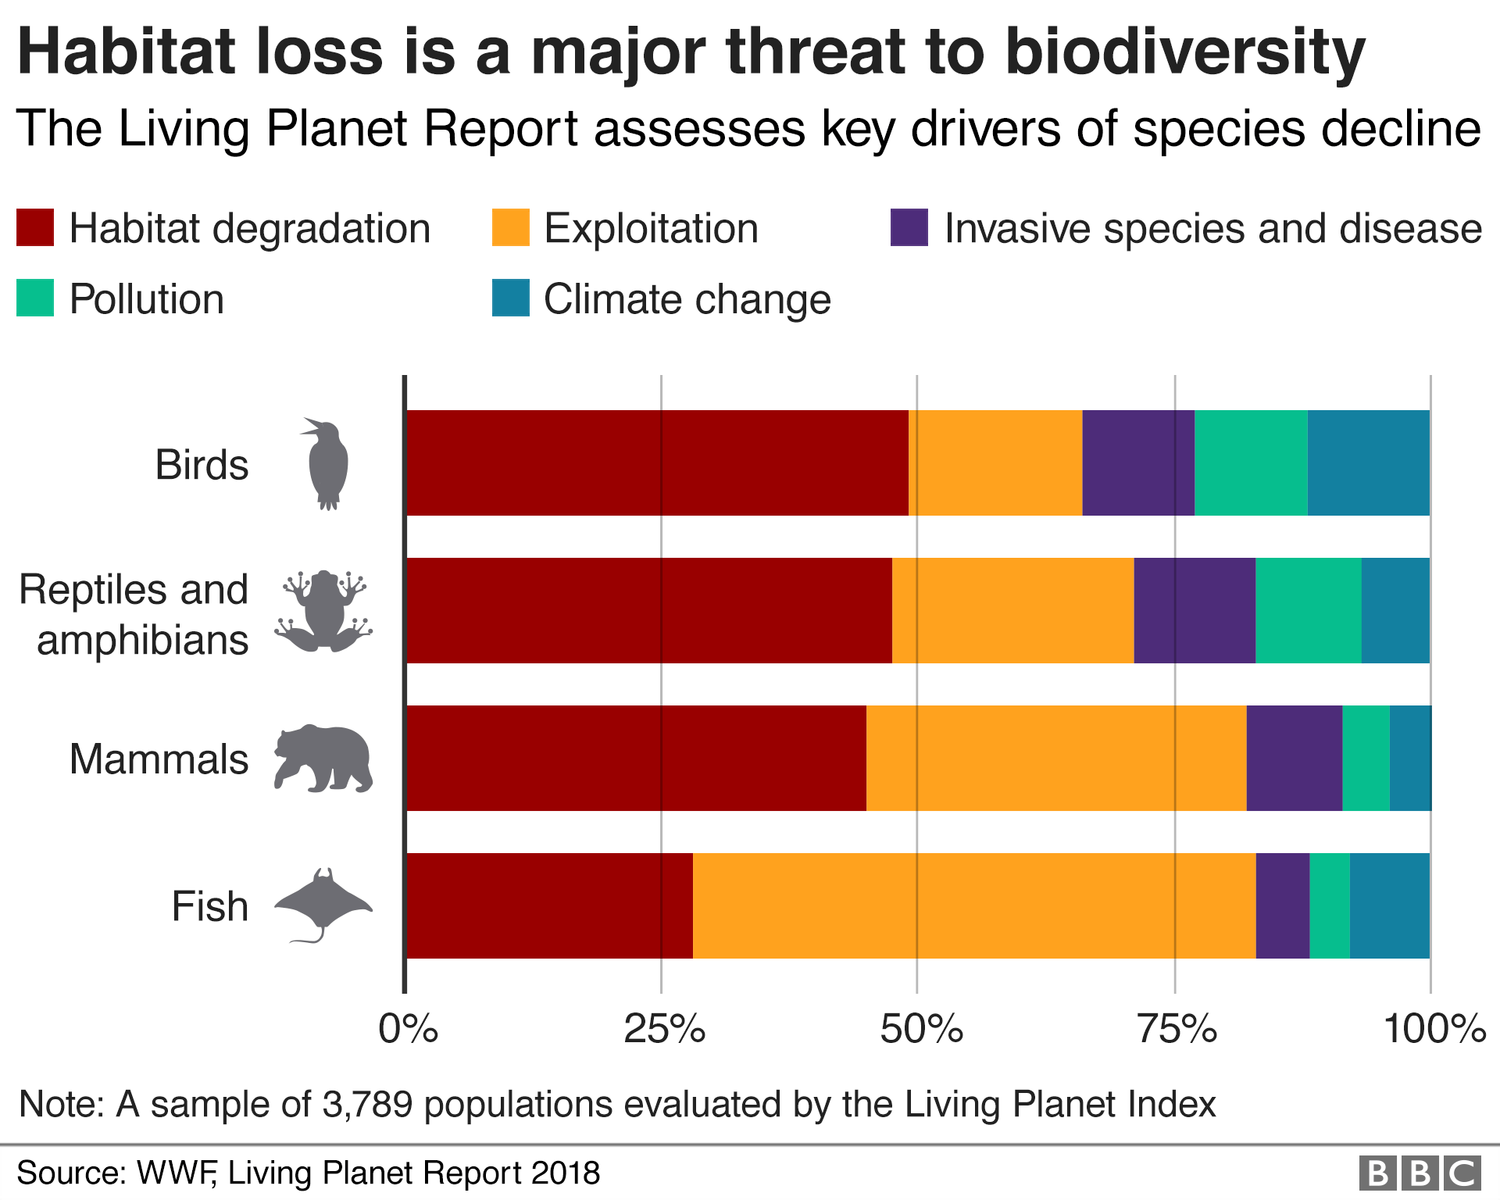 graphic showing the key drivers of biodiversity based on data from the Living Index Report, showing that habitat loss is the biggest threat to biodiversity